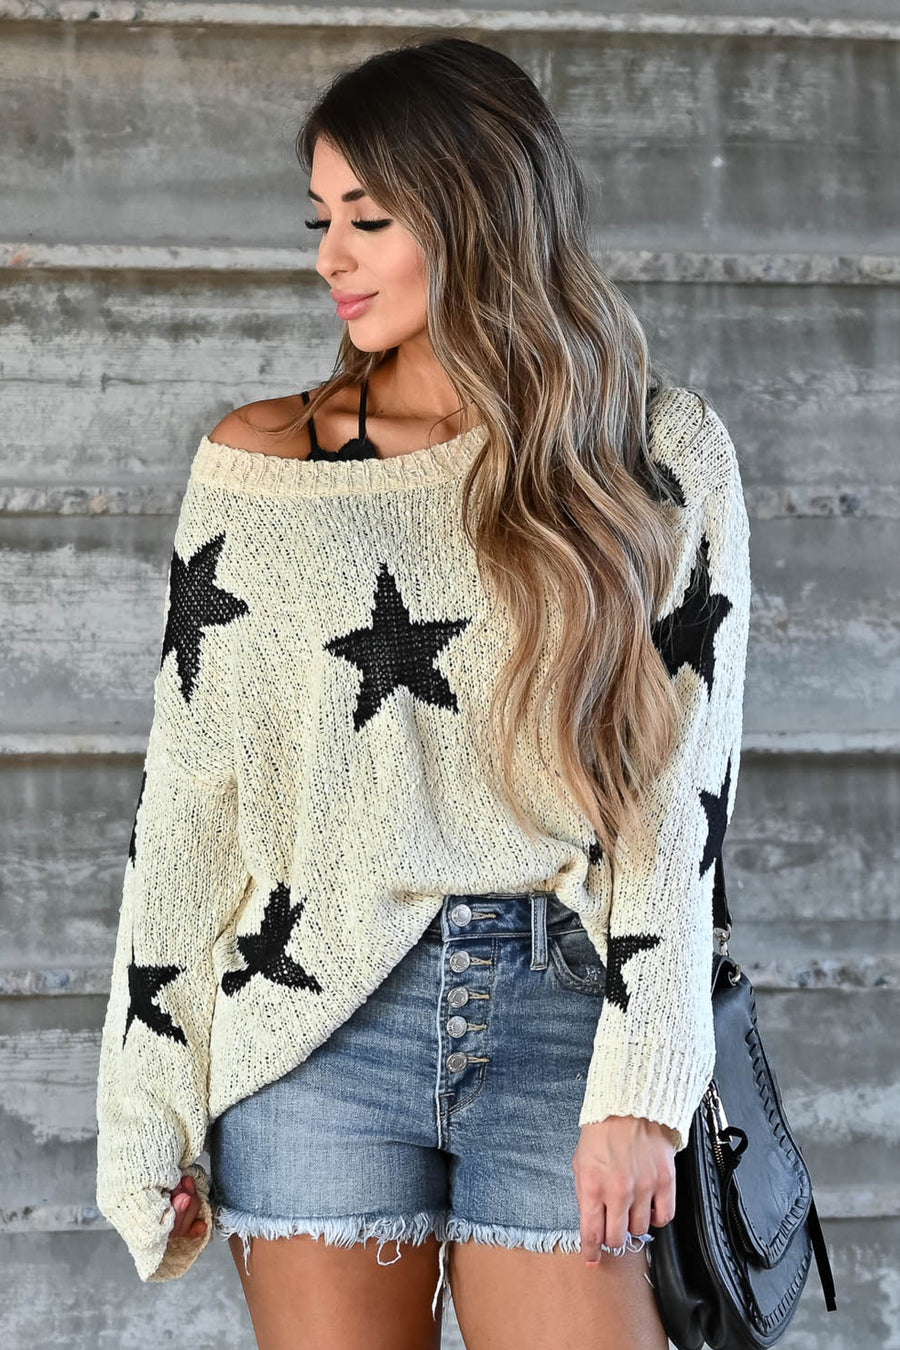 Wishes Fulfilled Star Sweater - Cream & Black omen's knit sweater featuring round neckline, drop shoulders, long sleeves, and ribbed trim closet candy front